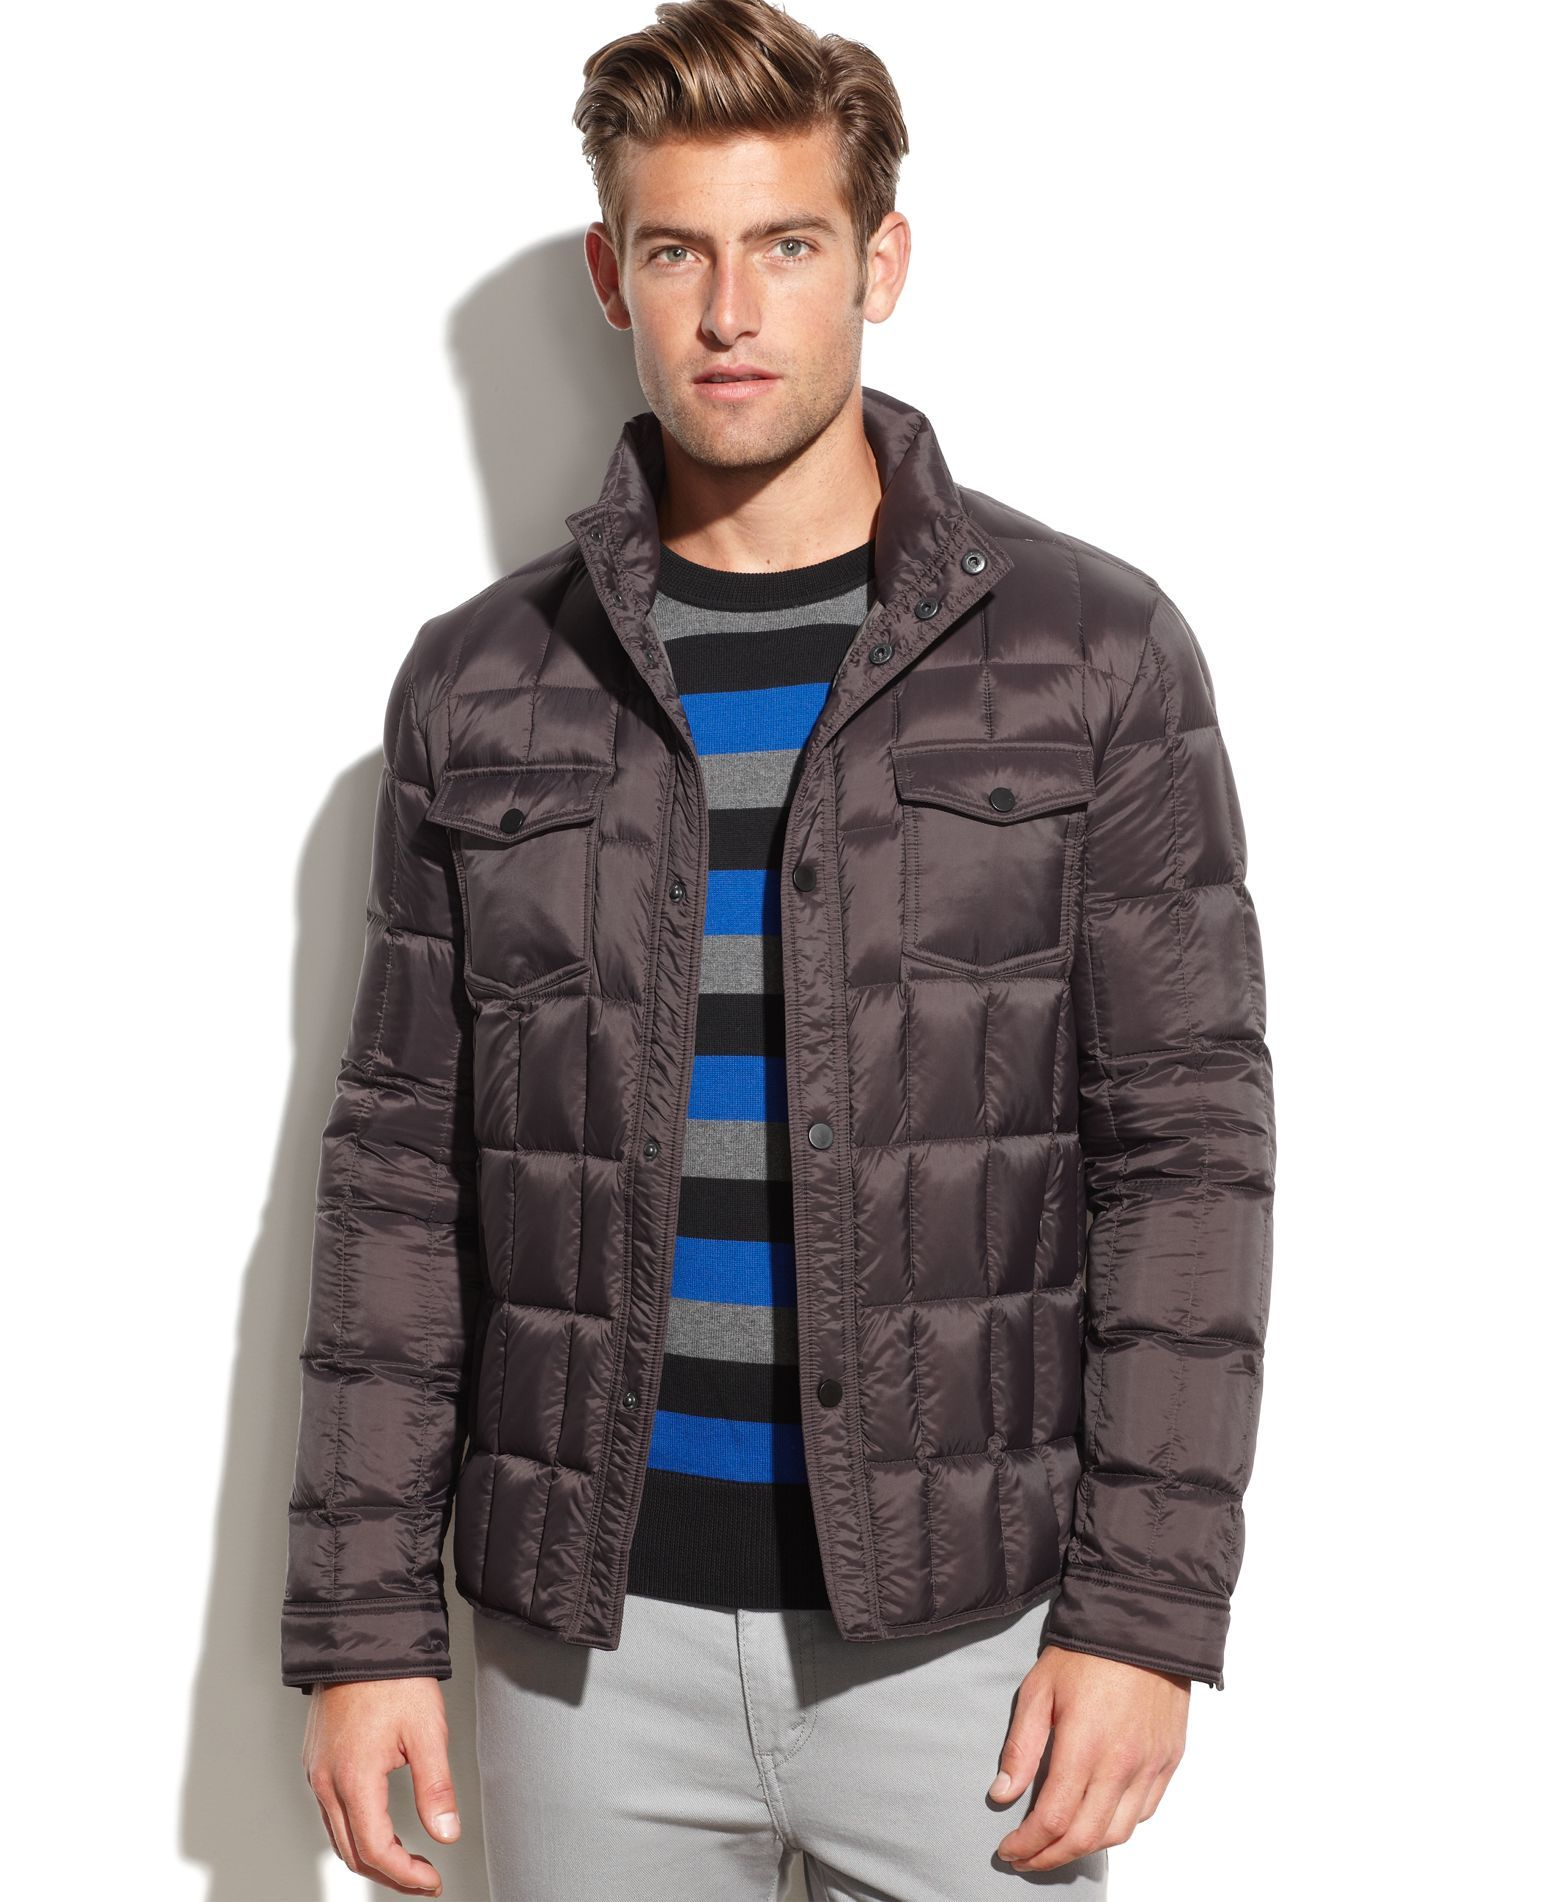 Kenneth Cole Box Quilted Puffer Jacket Coats Jackets Men Macy S Puffer Jackets Quilted Puffer Jacket Jackets [ 1902 x 1558 Pixel ]